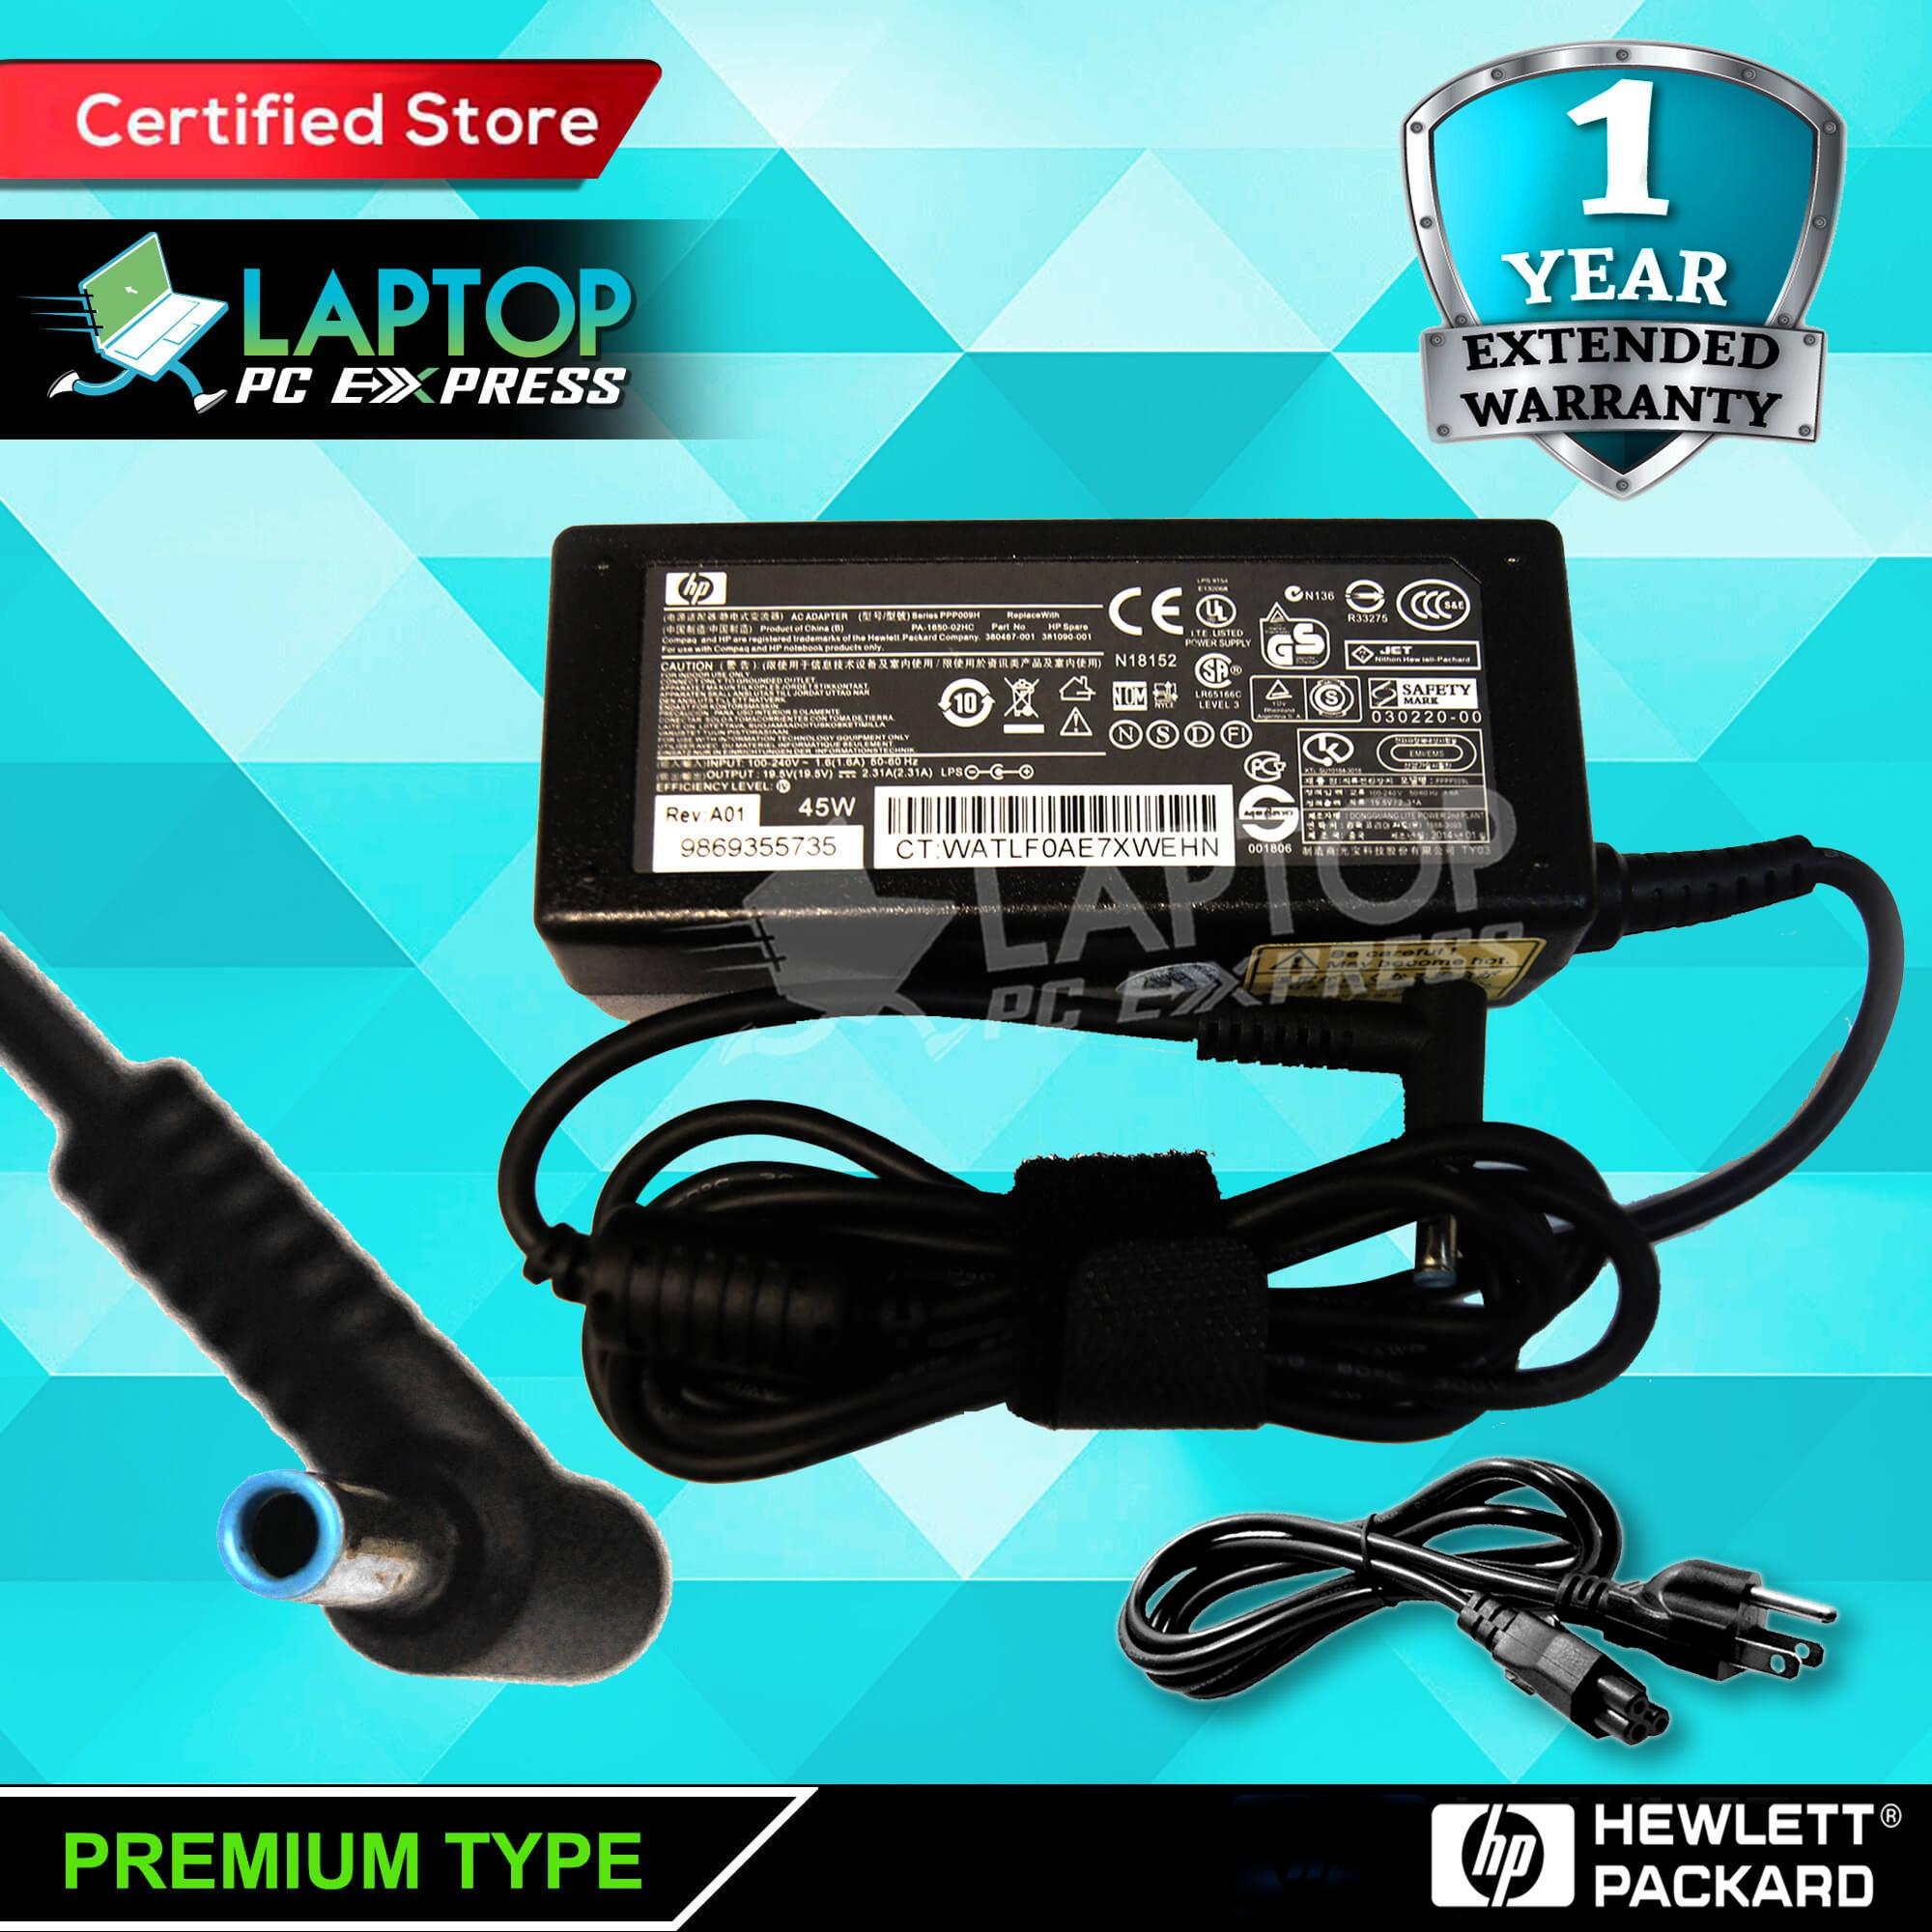 Laptop notebook charger 19 5v 2 31a 45w 4 5mm x 3 0mm for HP 15-ac180, HP  17-p143, 17-p033 15-ac174 , 15-ac197